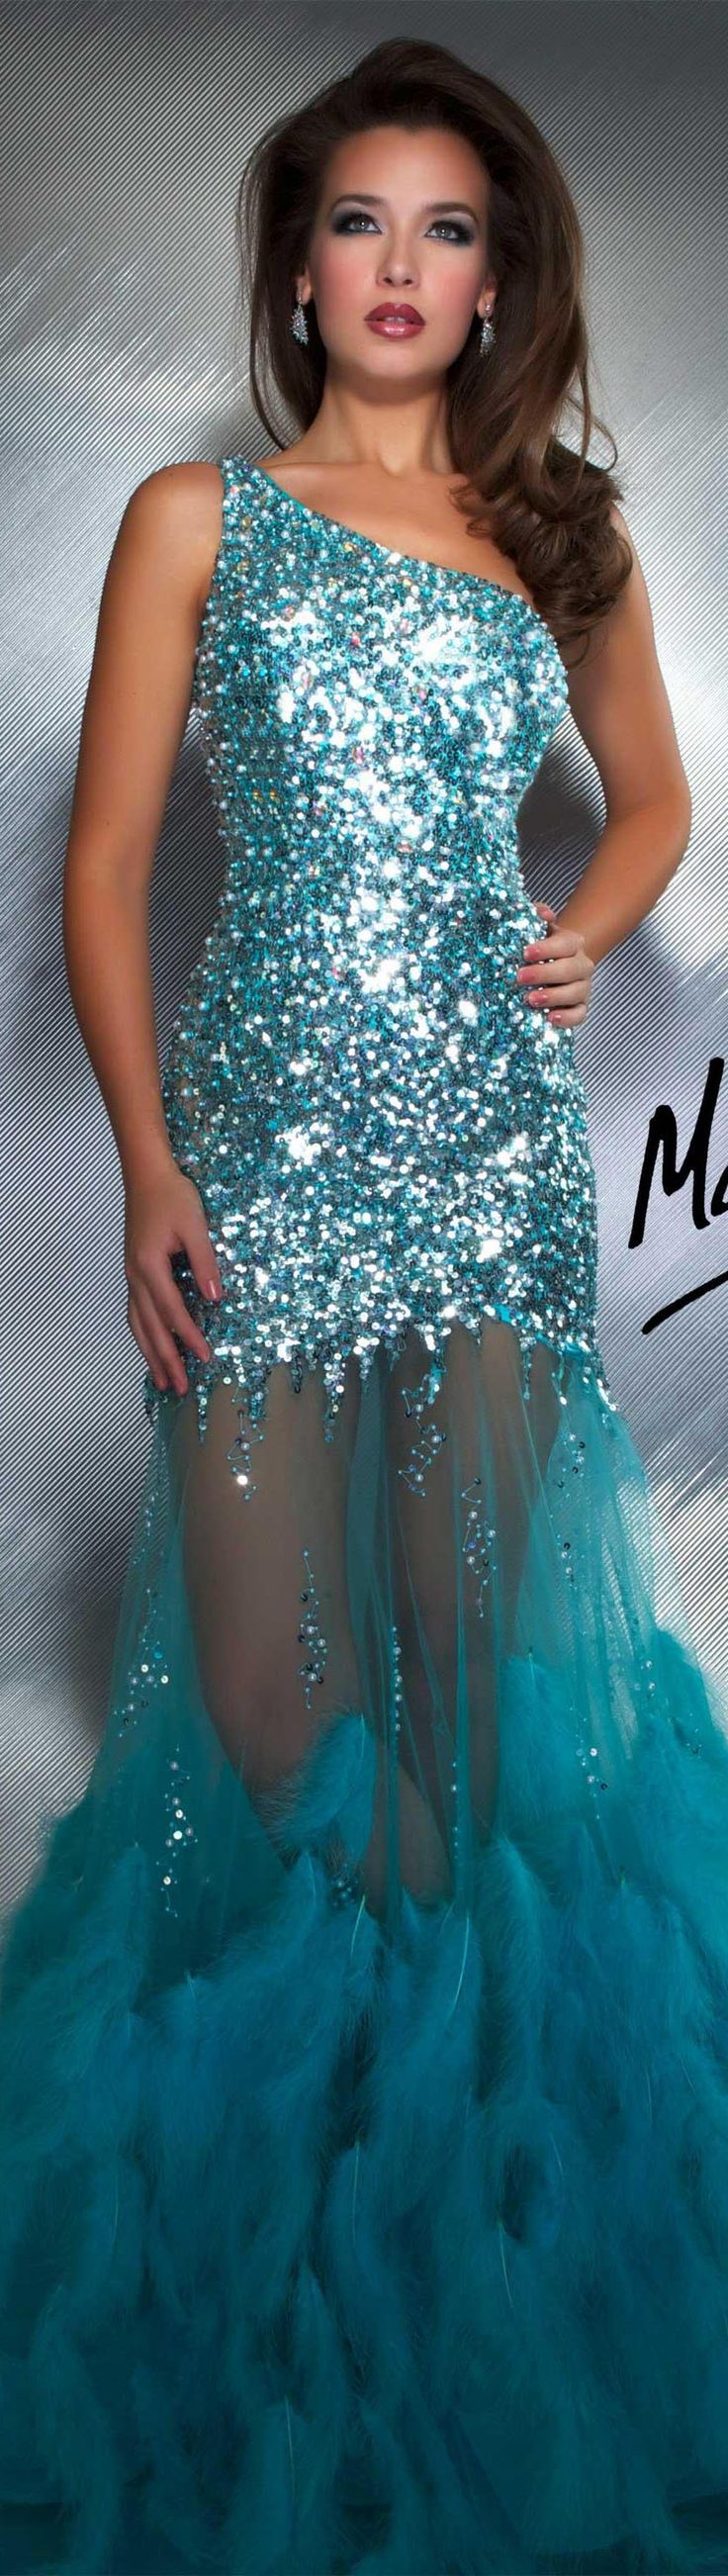 2182 best Prom look ahead 2018 images on Pinterest | Dance costumes ...